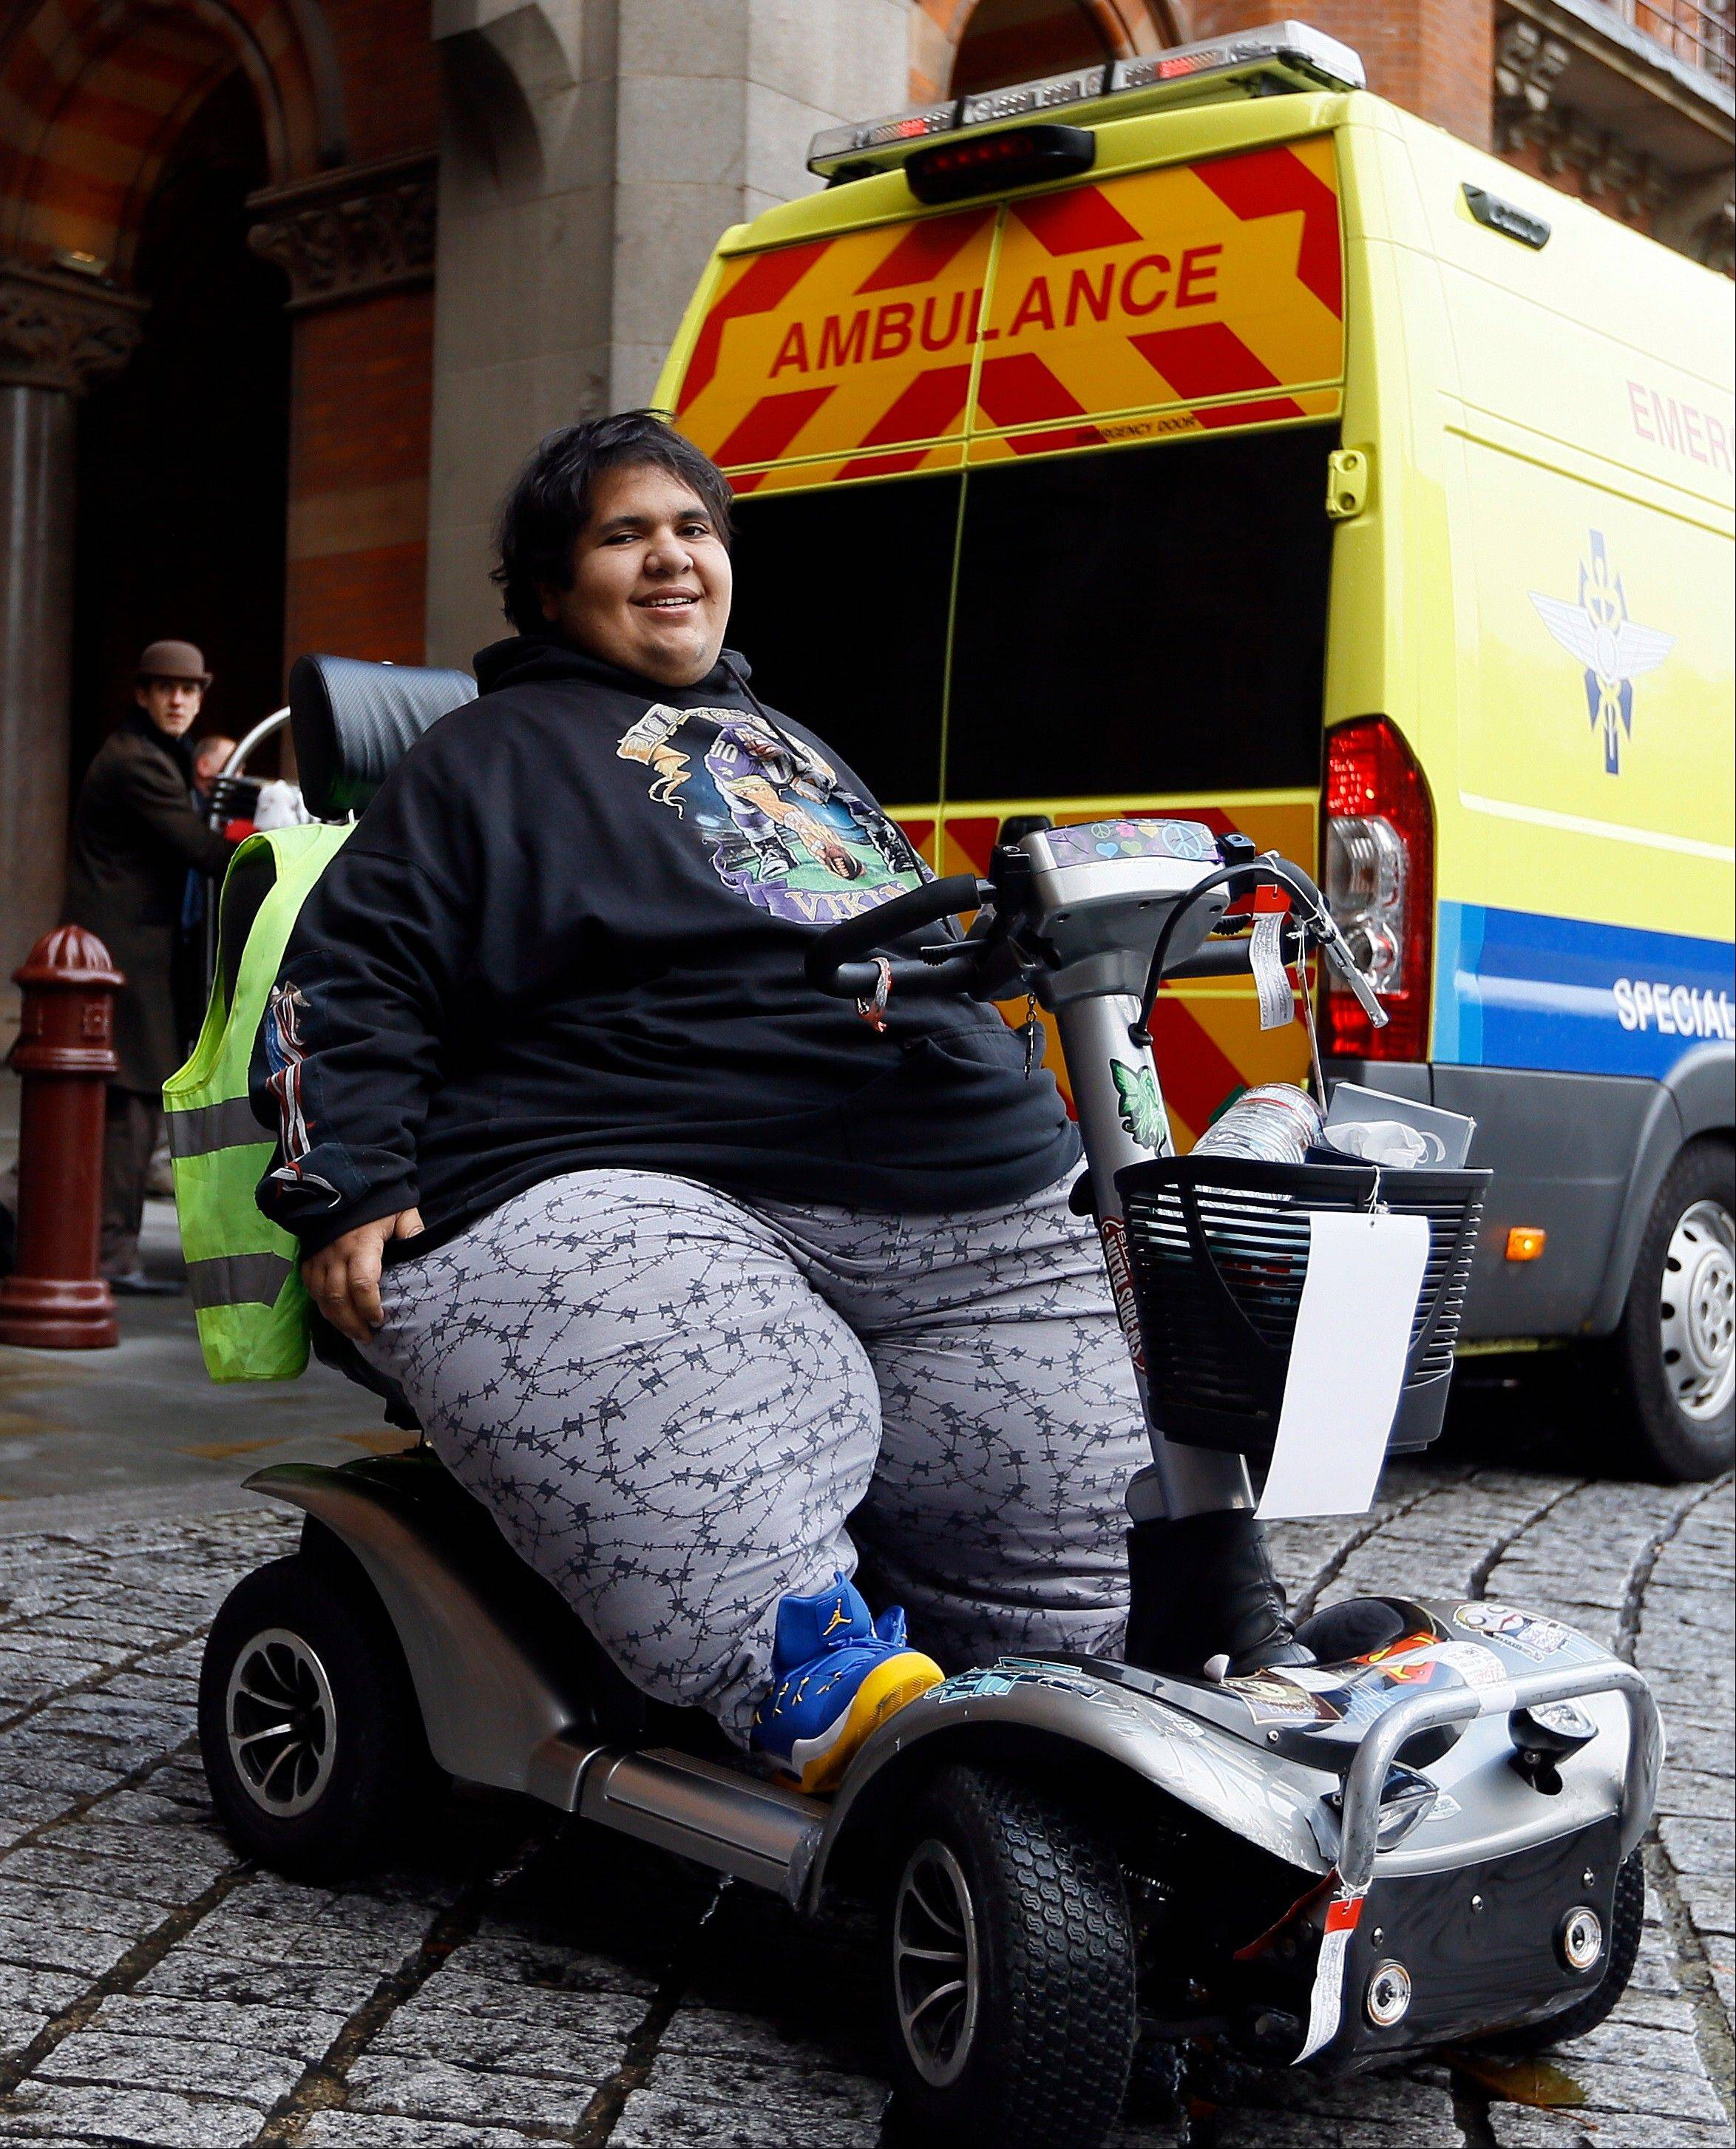 Kevin Chenais sits in his mobility scooter in front of an ambulance at St Pancras in London, Wednesday, Nov. 20, 2013. Chenais, who suffers from a genetic illness, will travel by ambulance and ferry back to France.